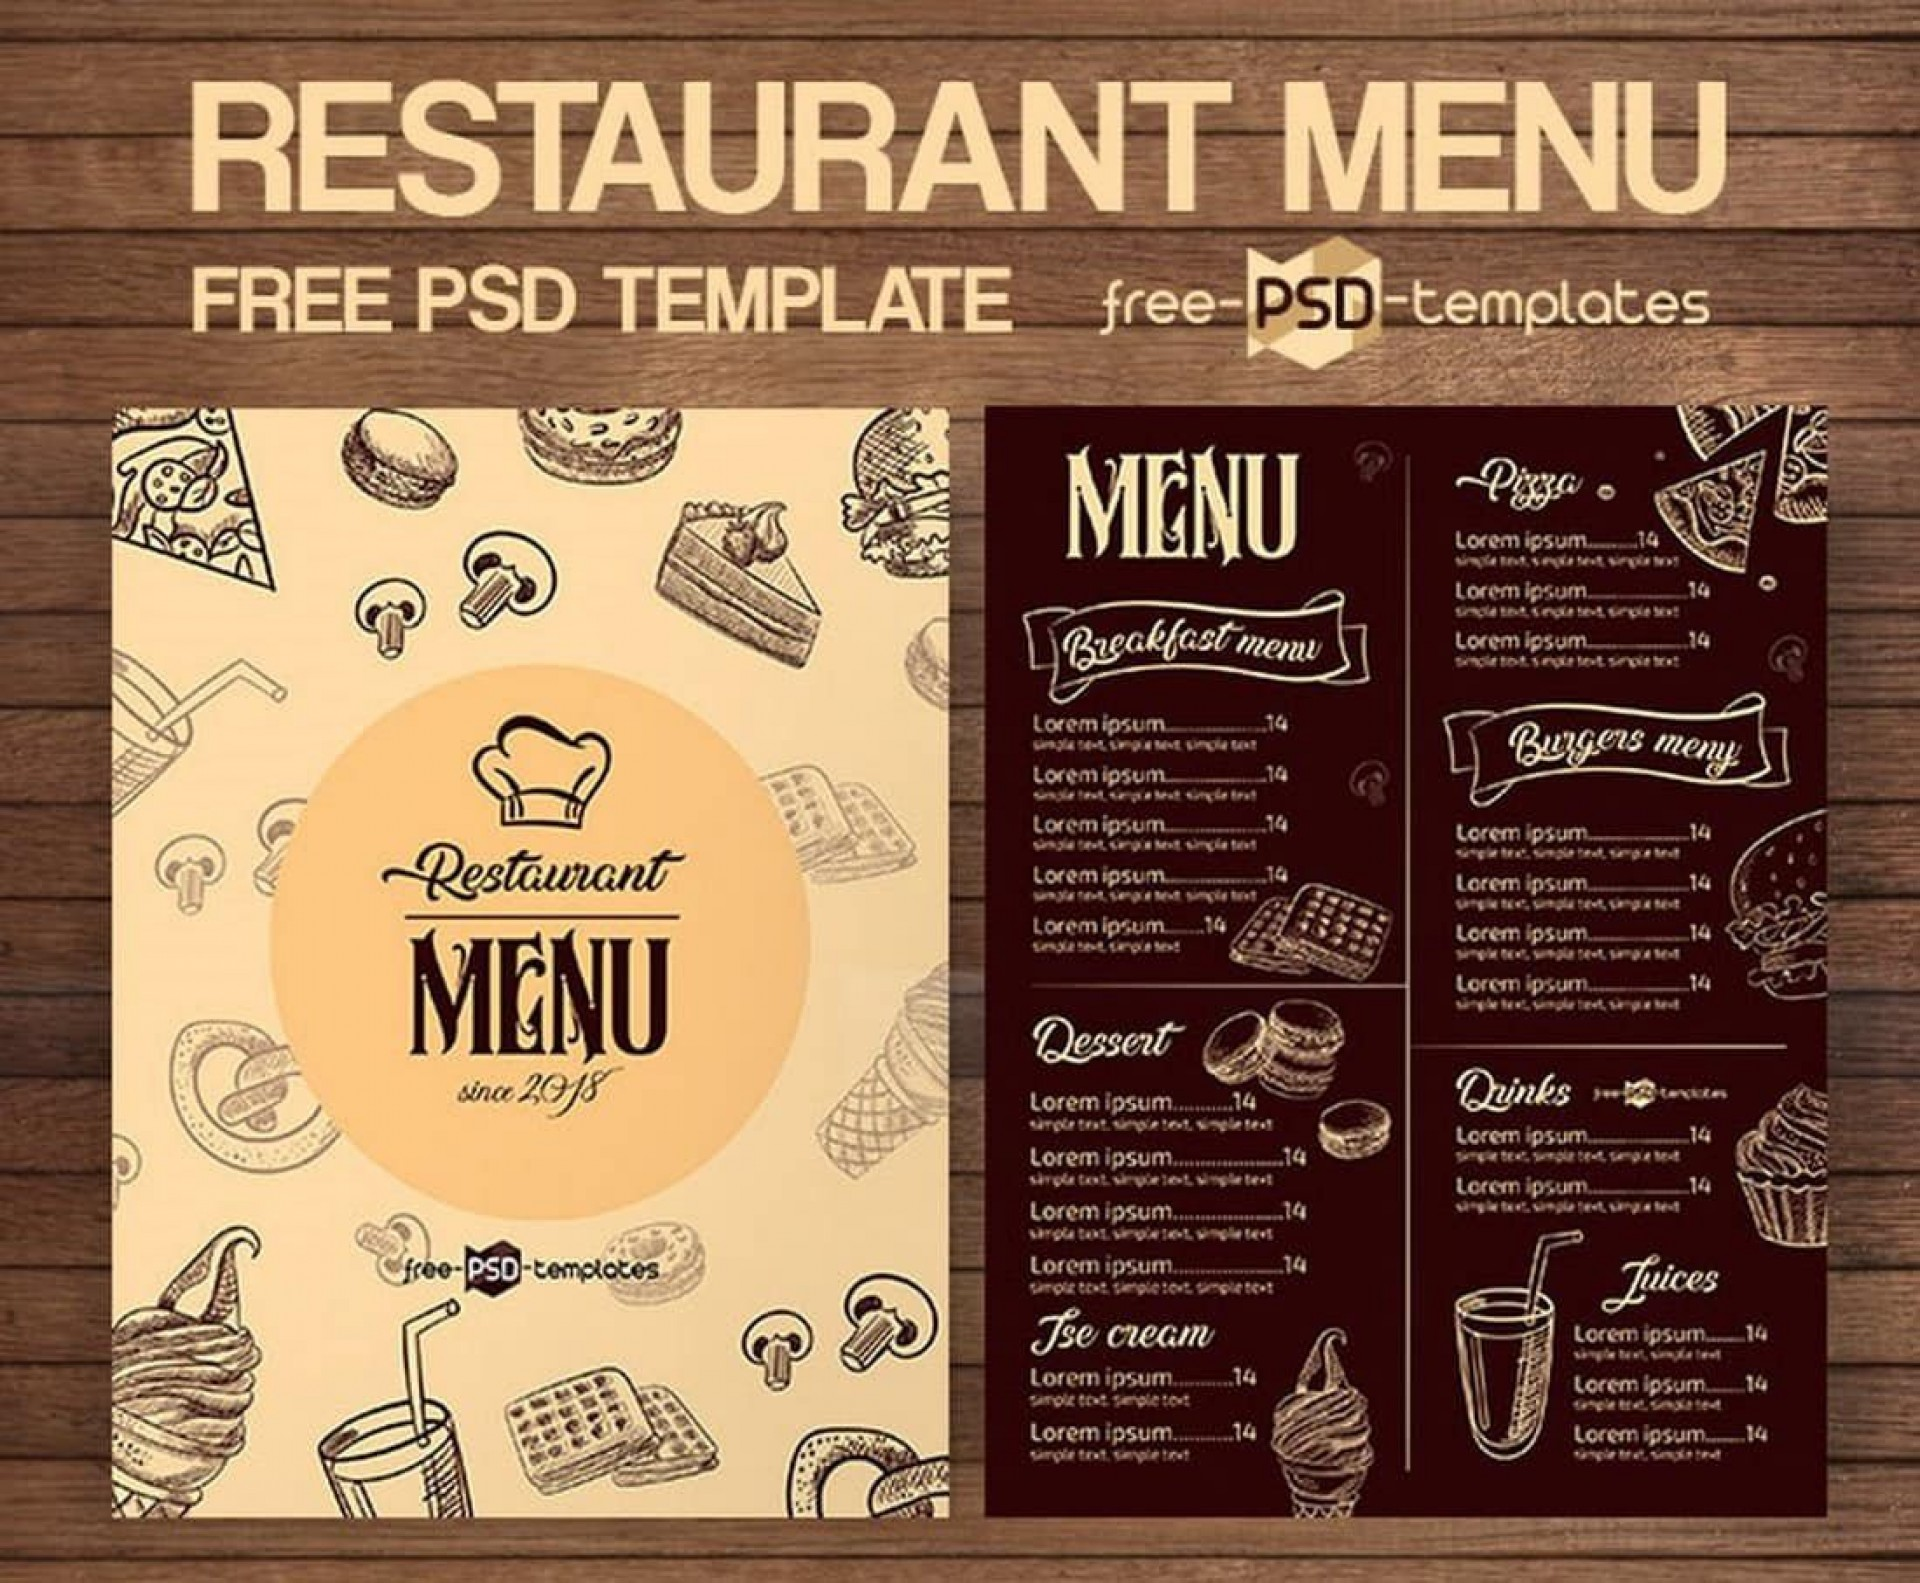 005 Simple Restaurant Menu Template Free Picture  Card Download Indesign Word1920